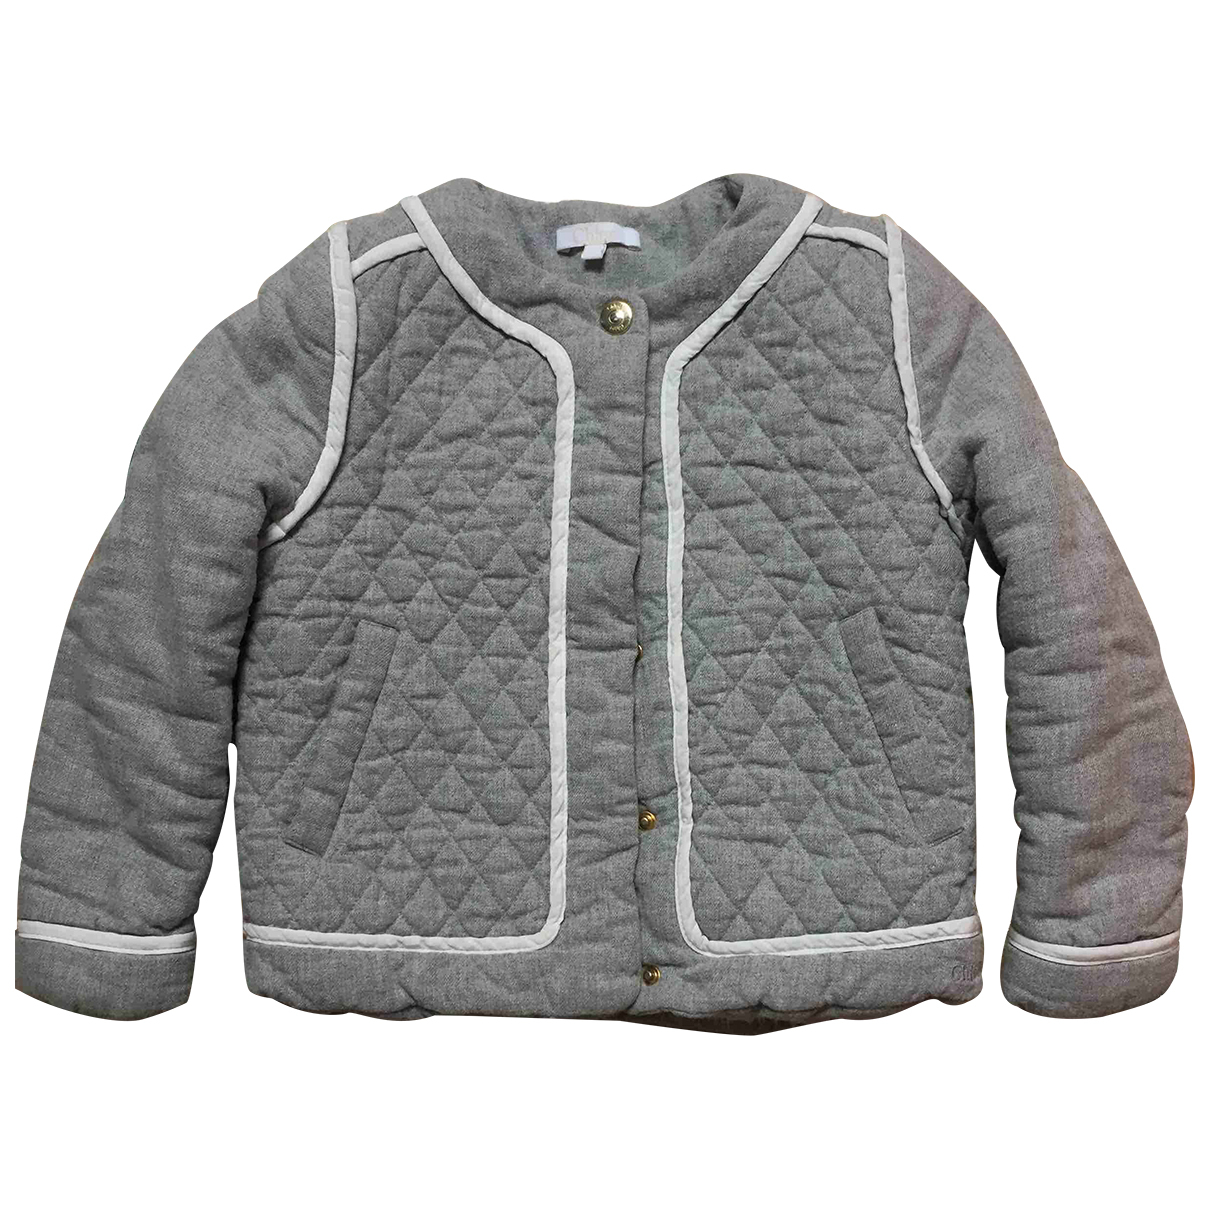 Chloé N Grey Cotton jacket & coat for Kids 5 years - up to 108cm FR